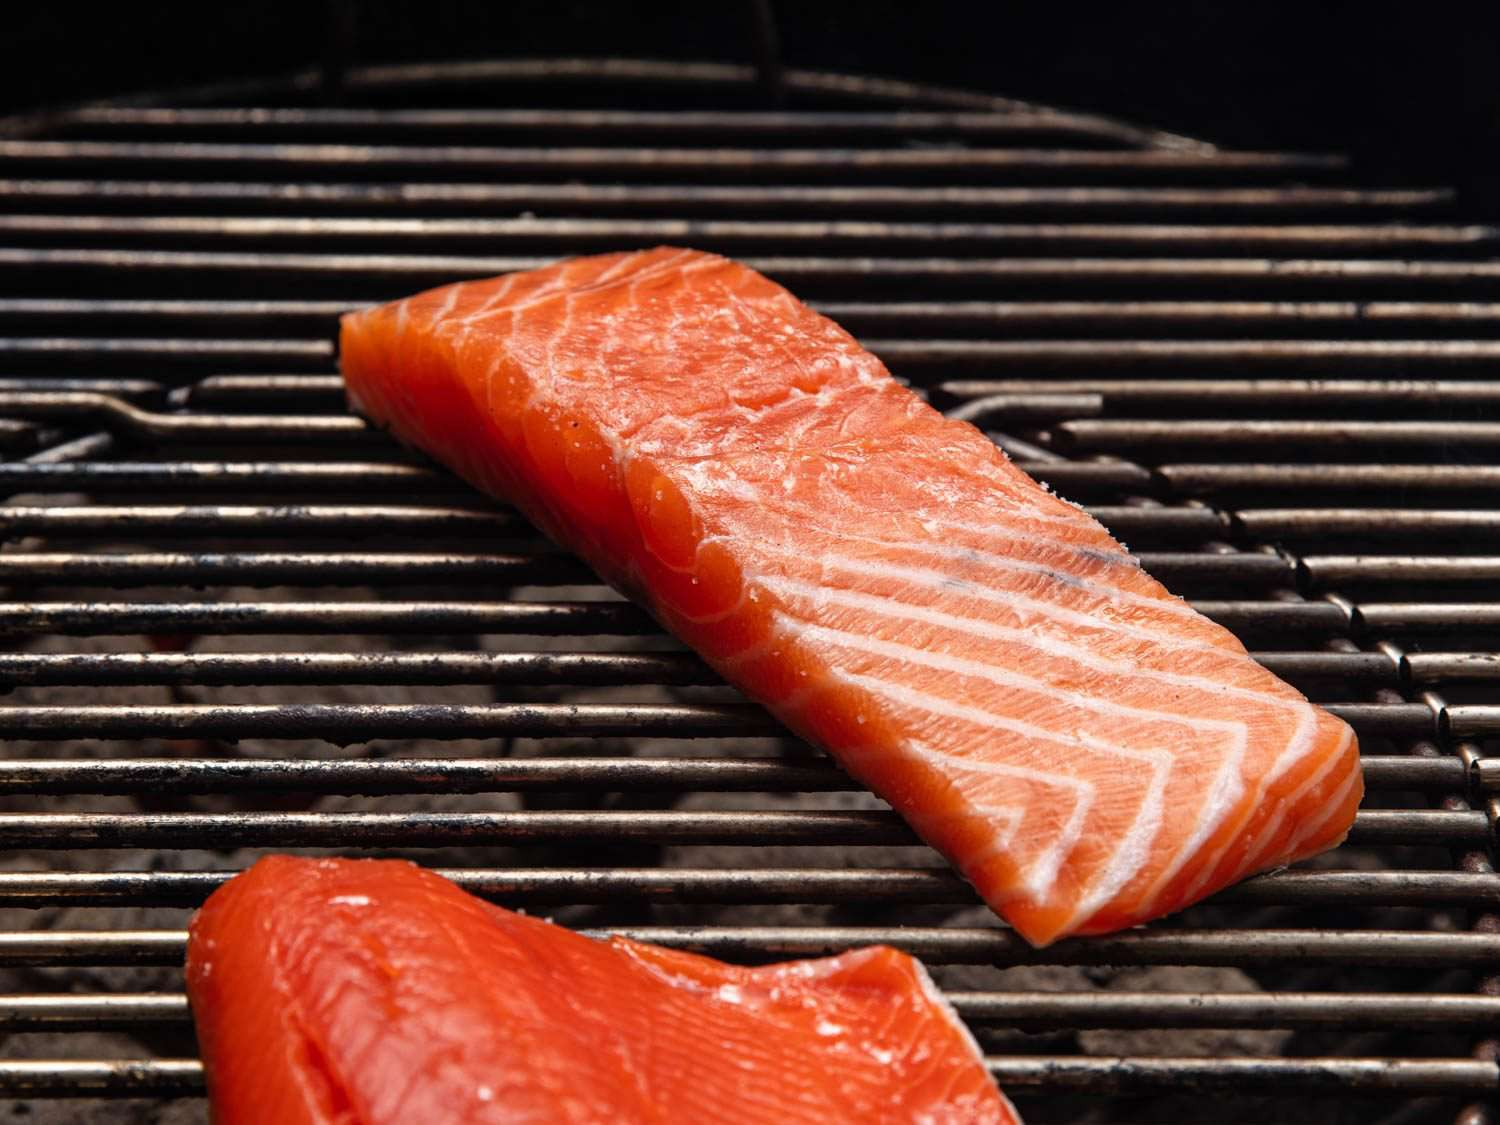 A piece of salmon, still mostly raw, skin side down on the grill.